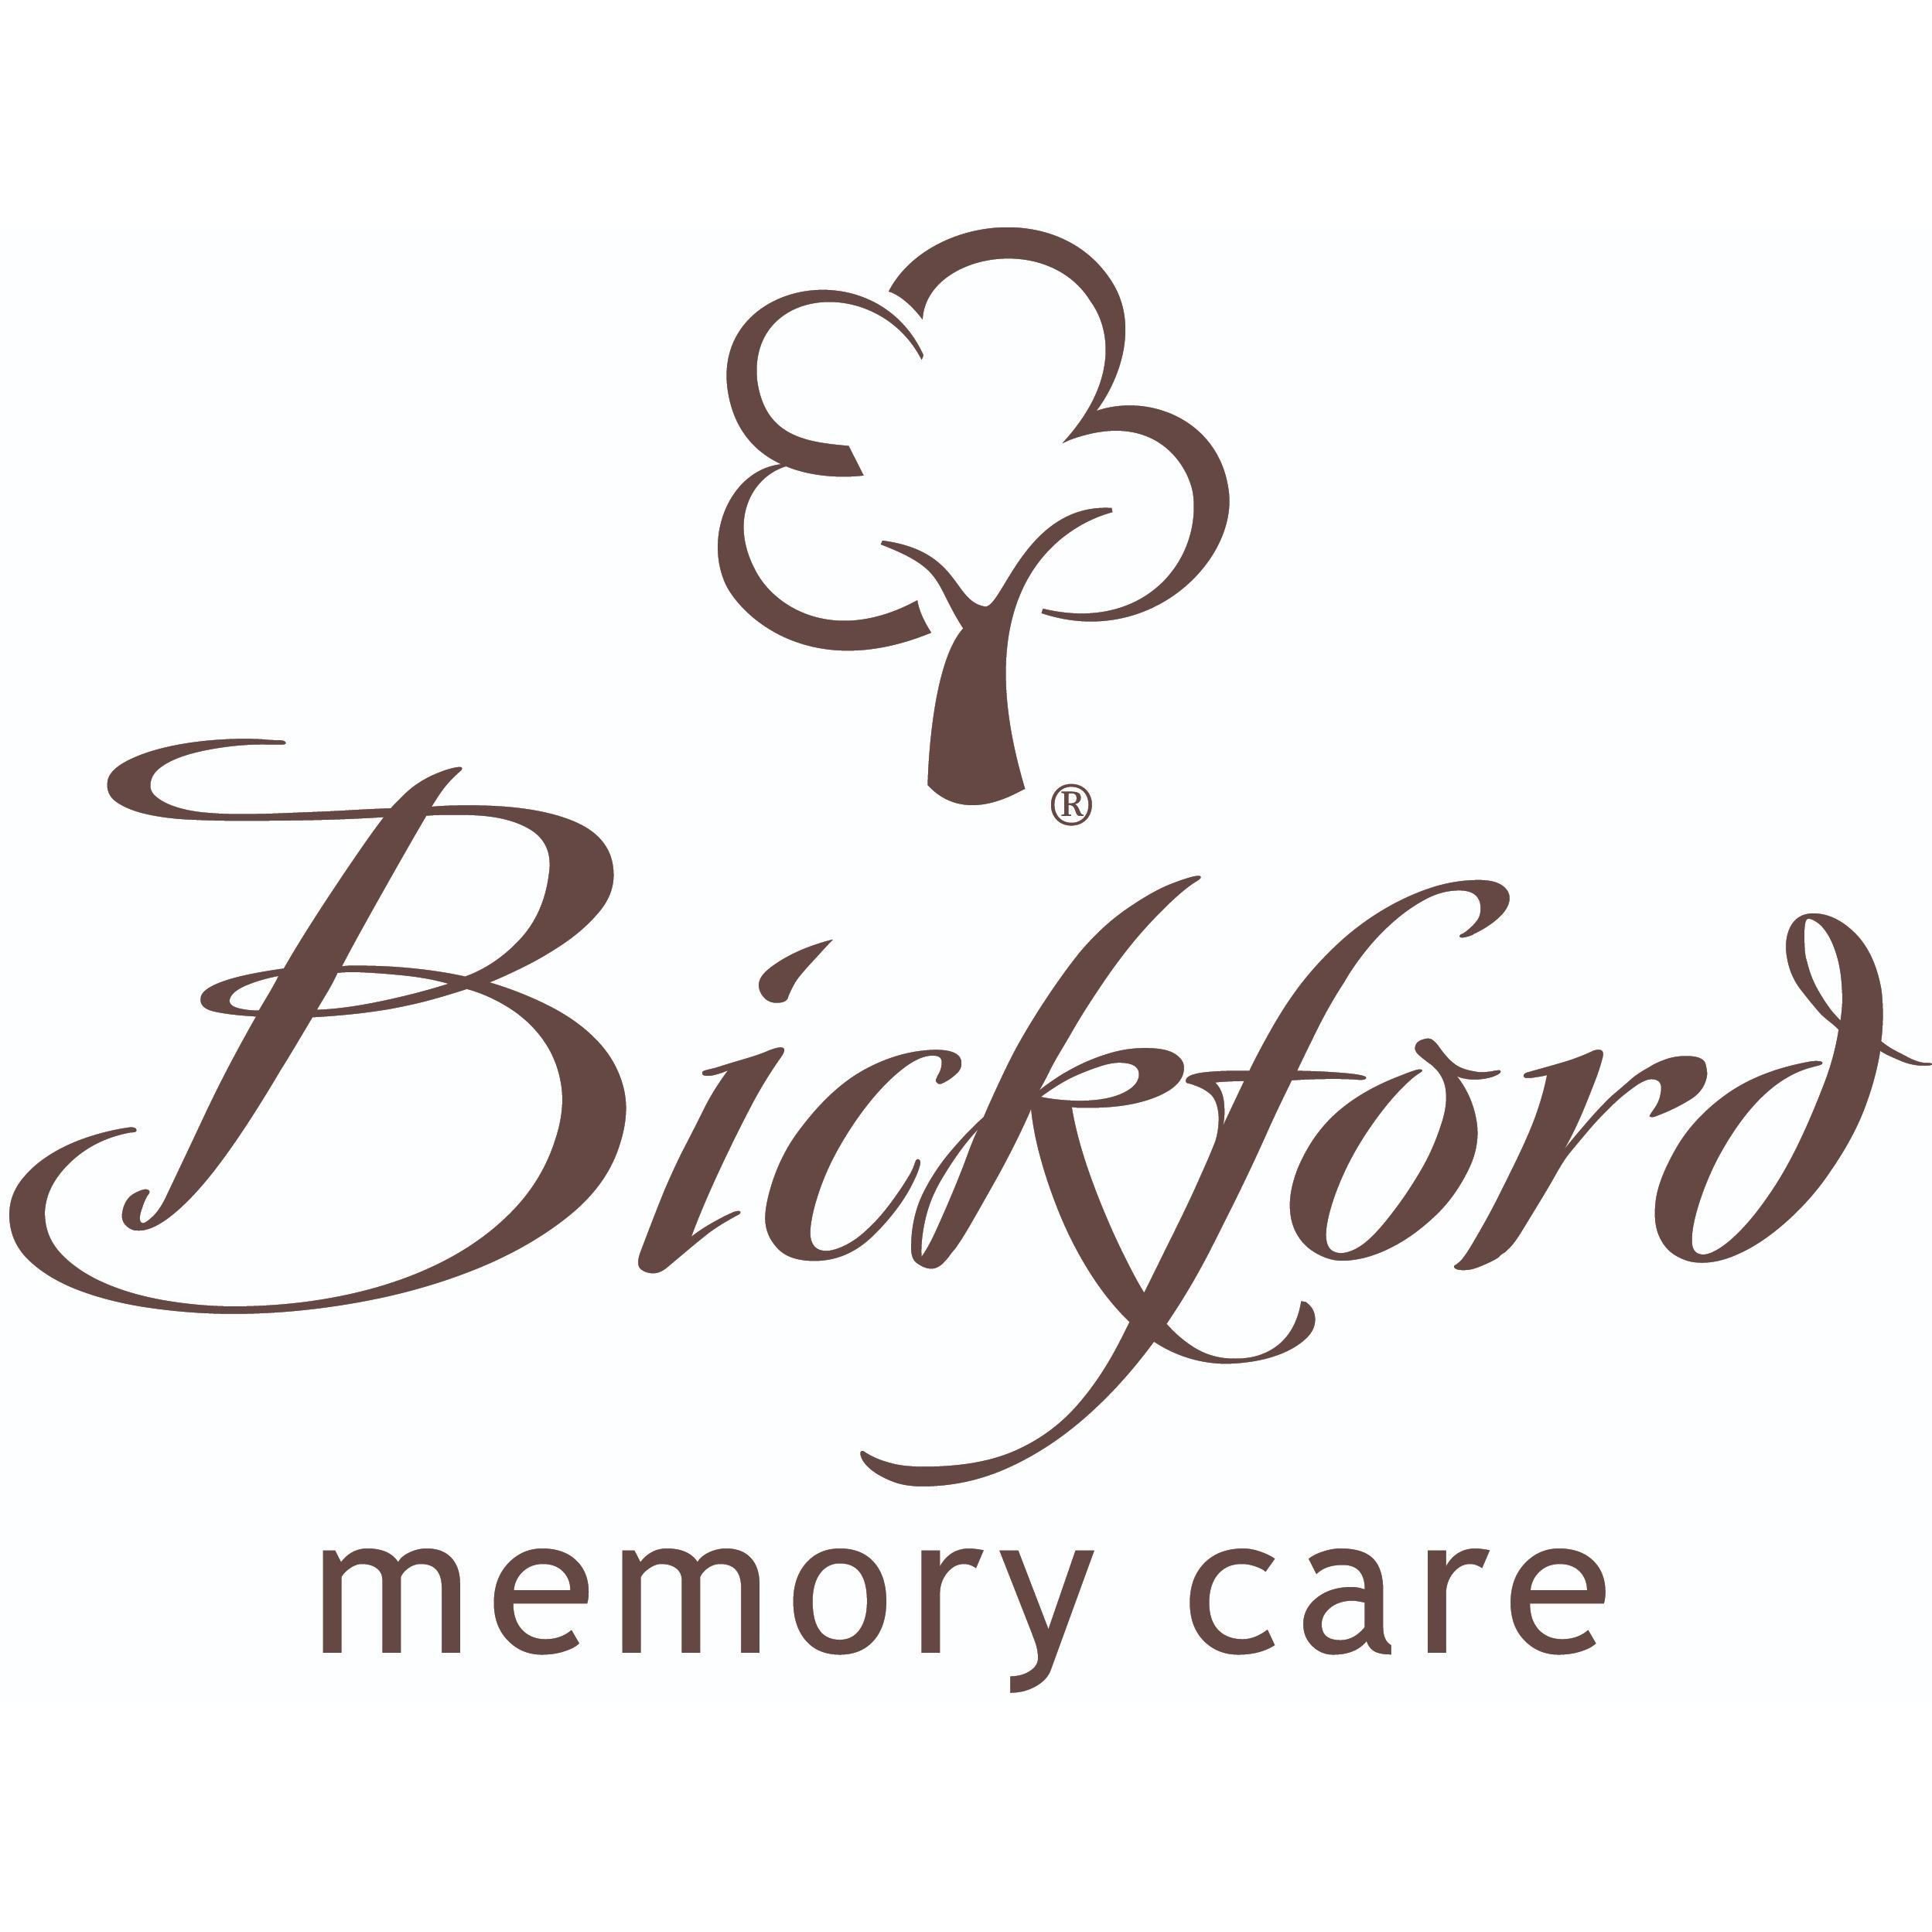 Bickford of Sioux City image 1